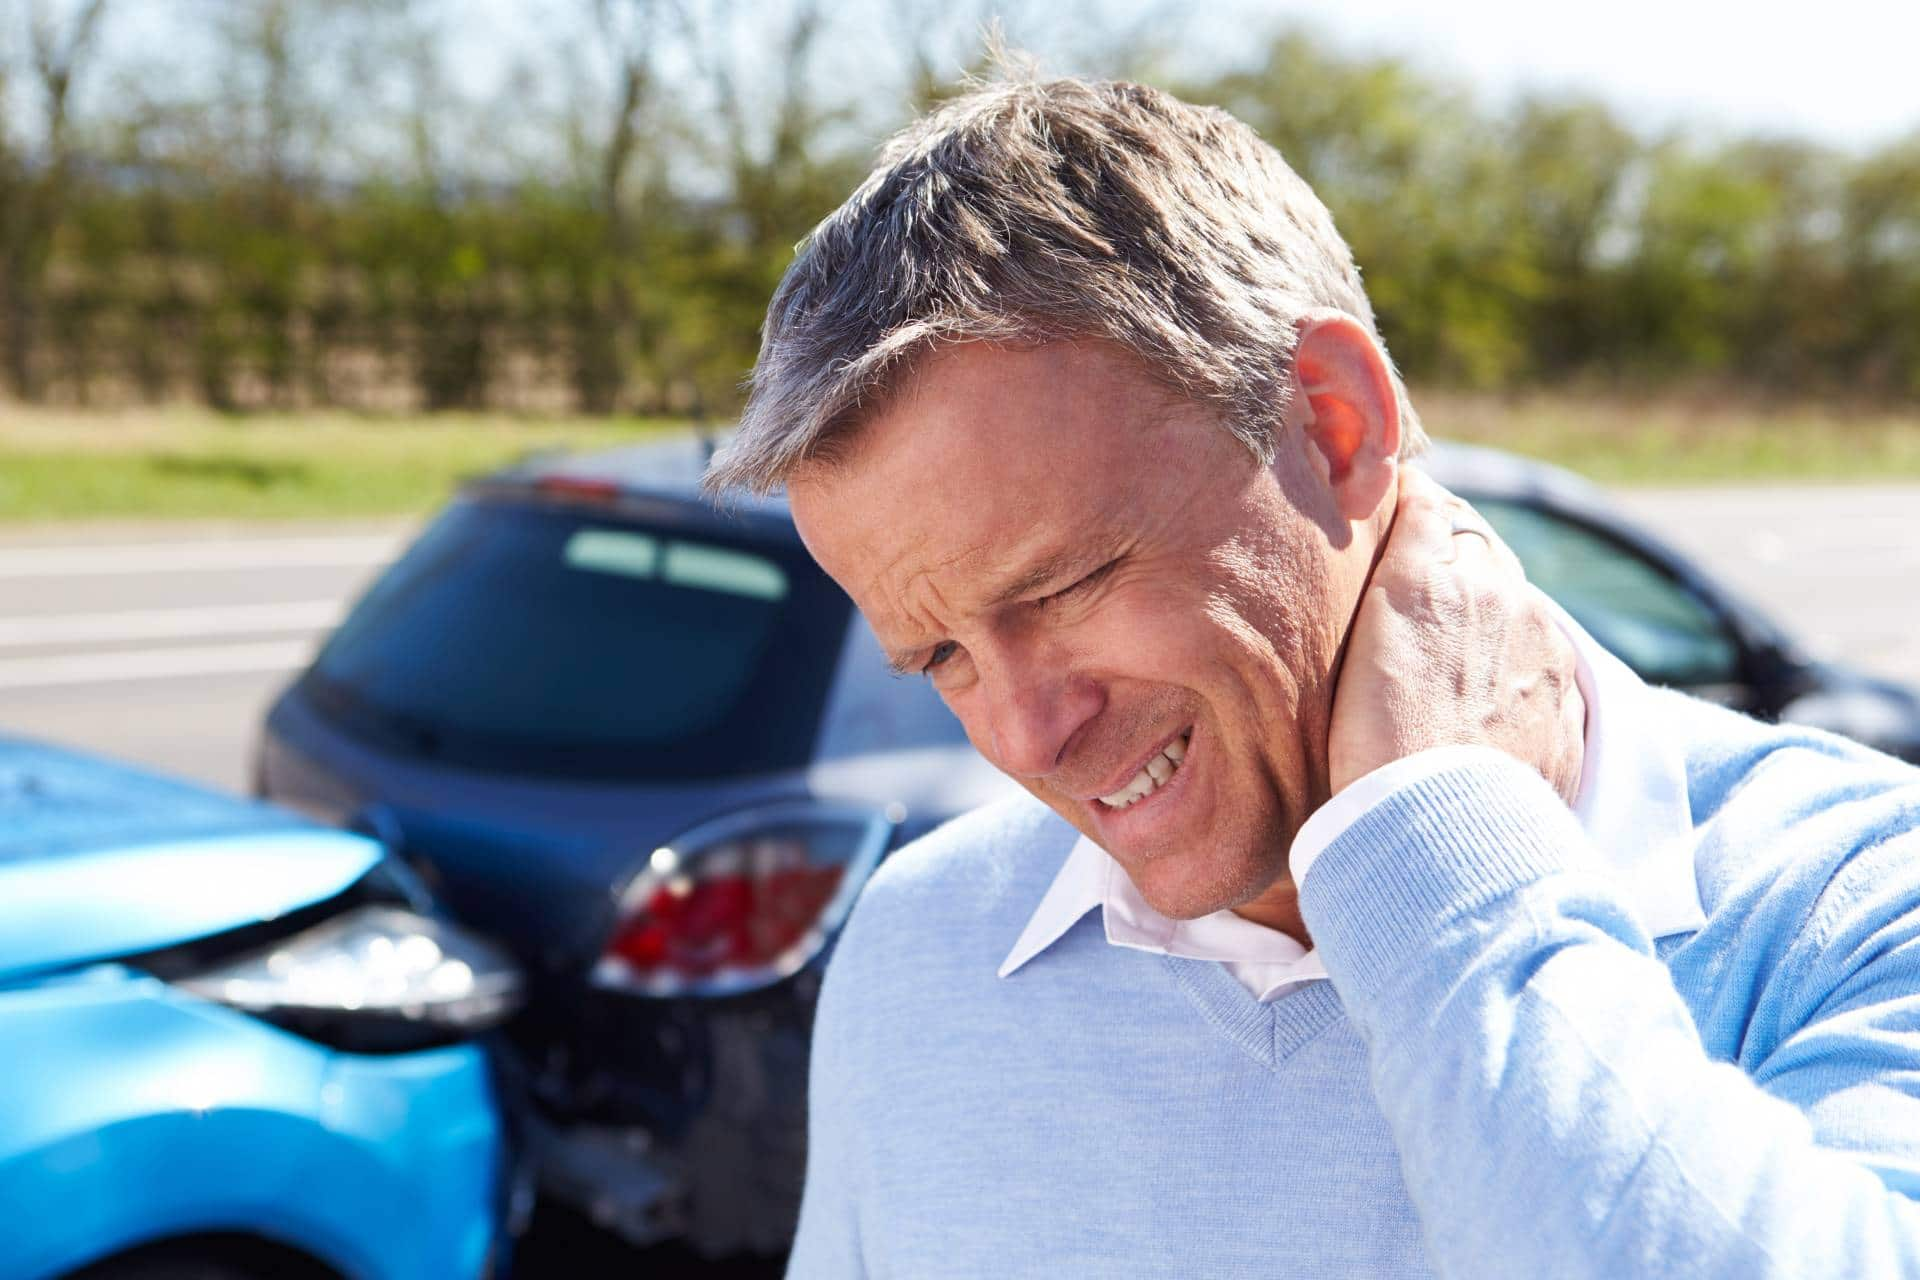 Injured in an auto accident? Schedule a free consultation with our personal injury lawyers at the Angell Law Firm in East Point, Georgia.